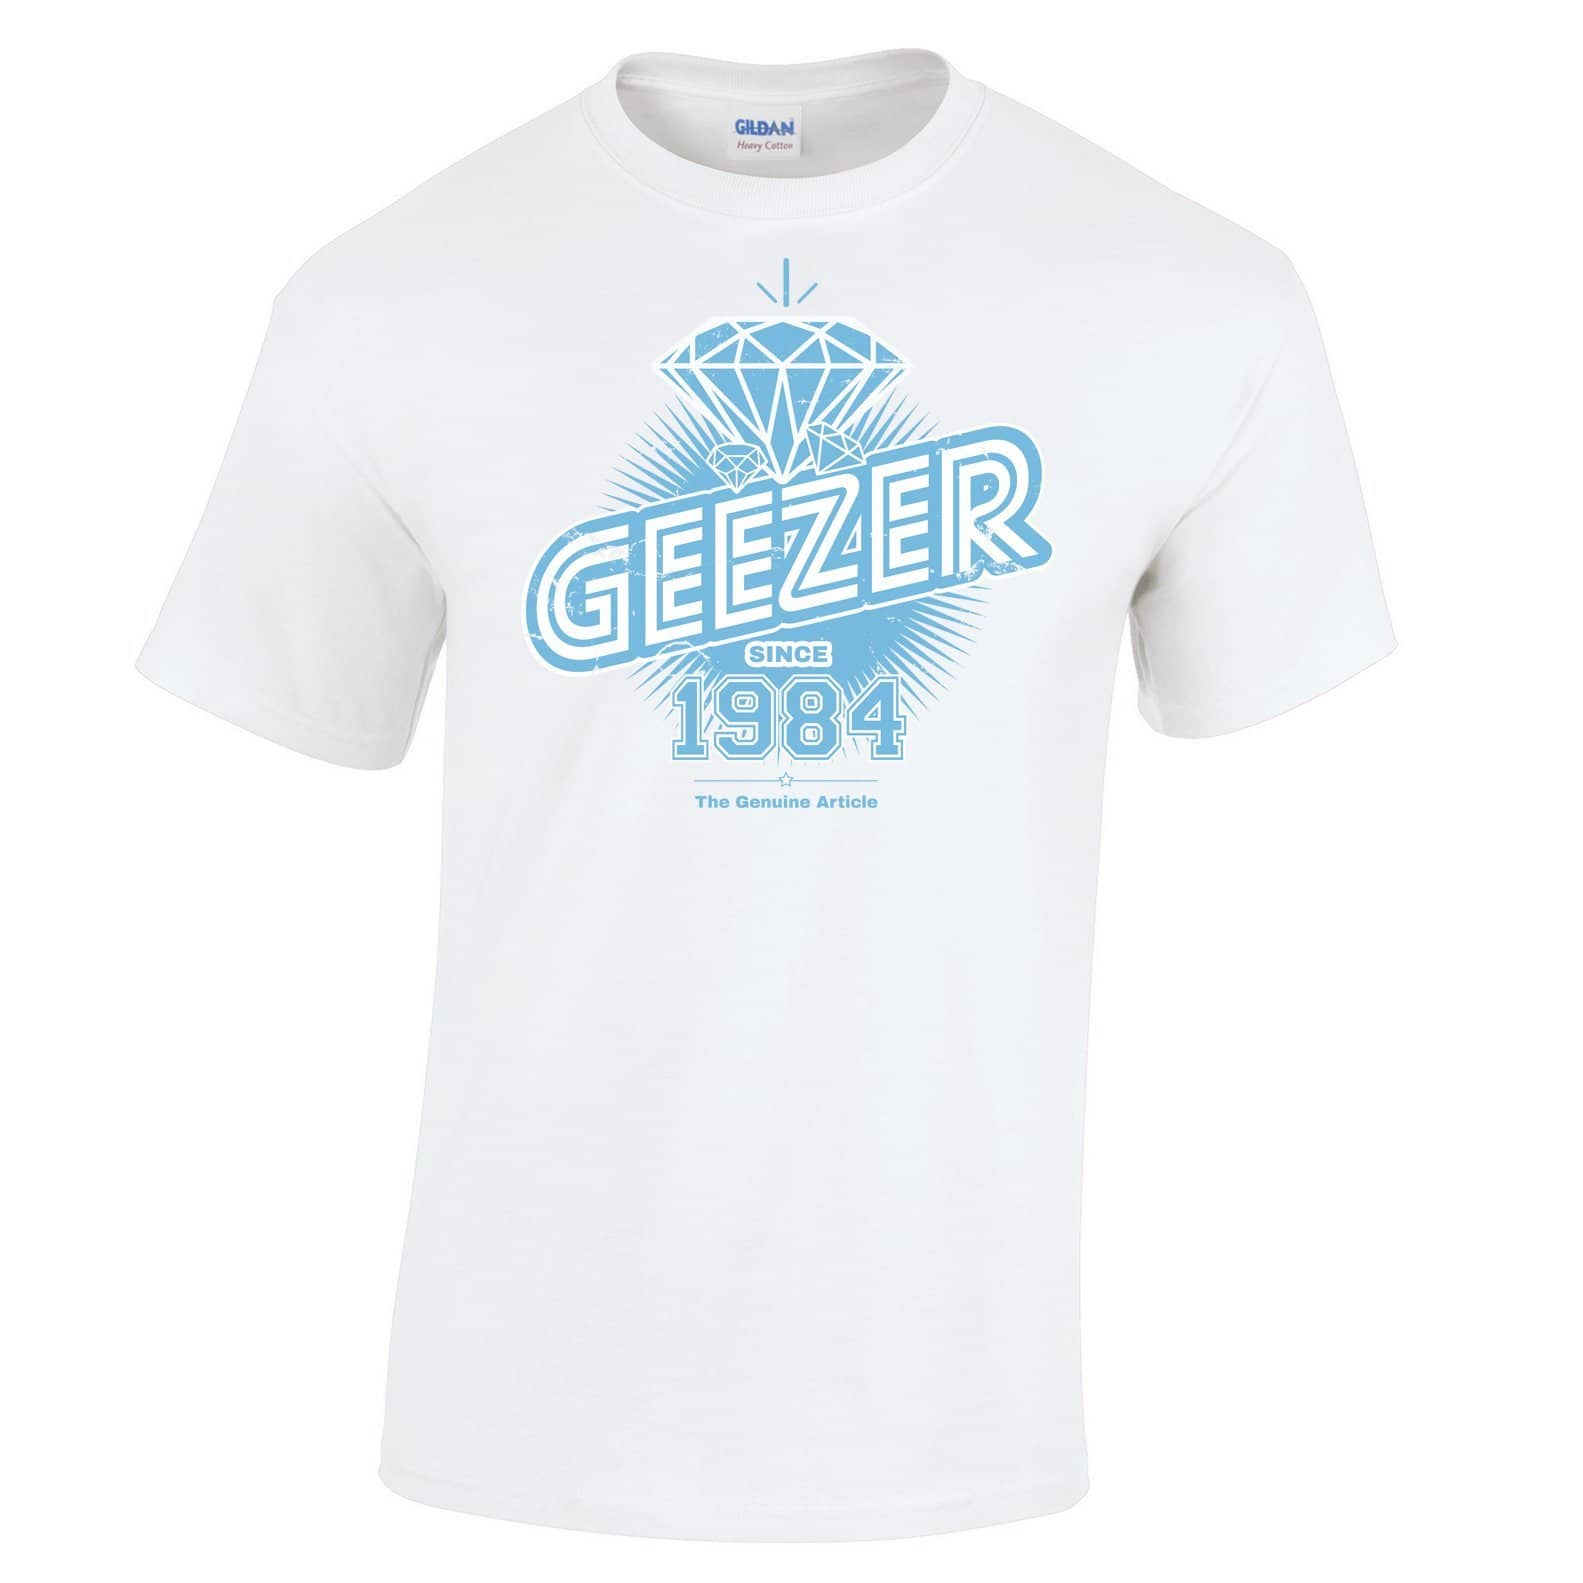 34th Birthday T Shirt Diamond Geezer Since 1984